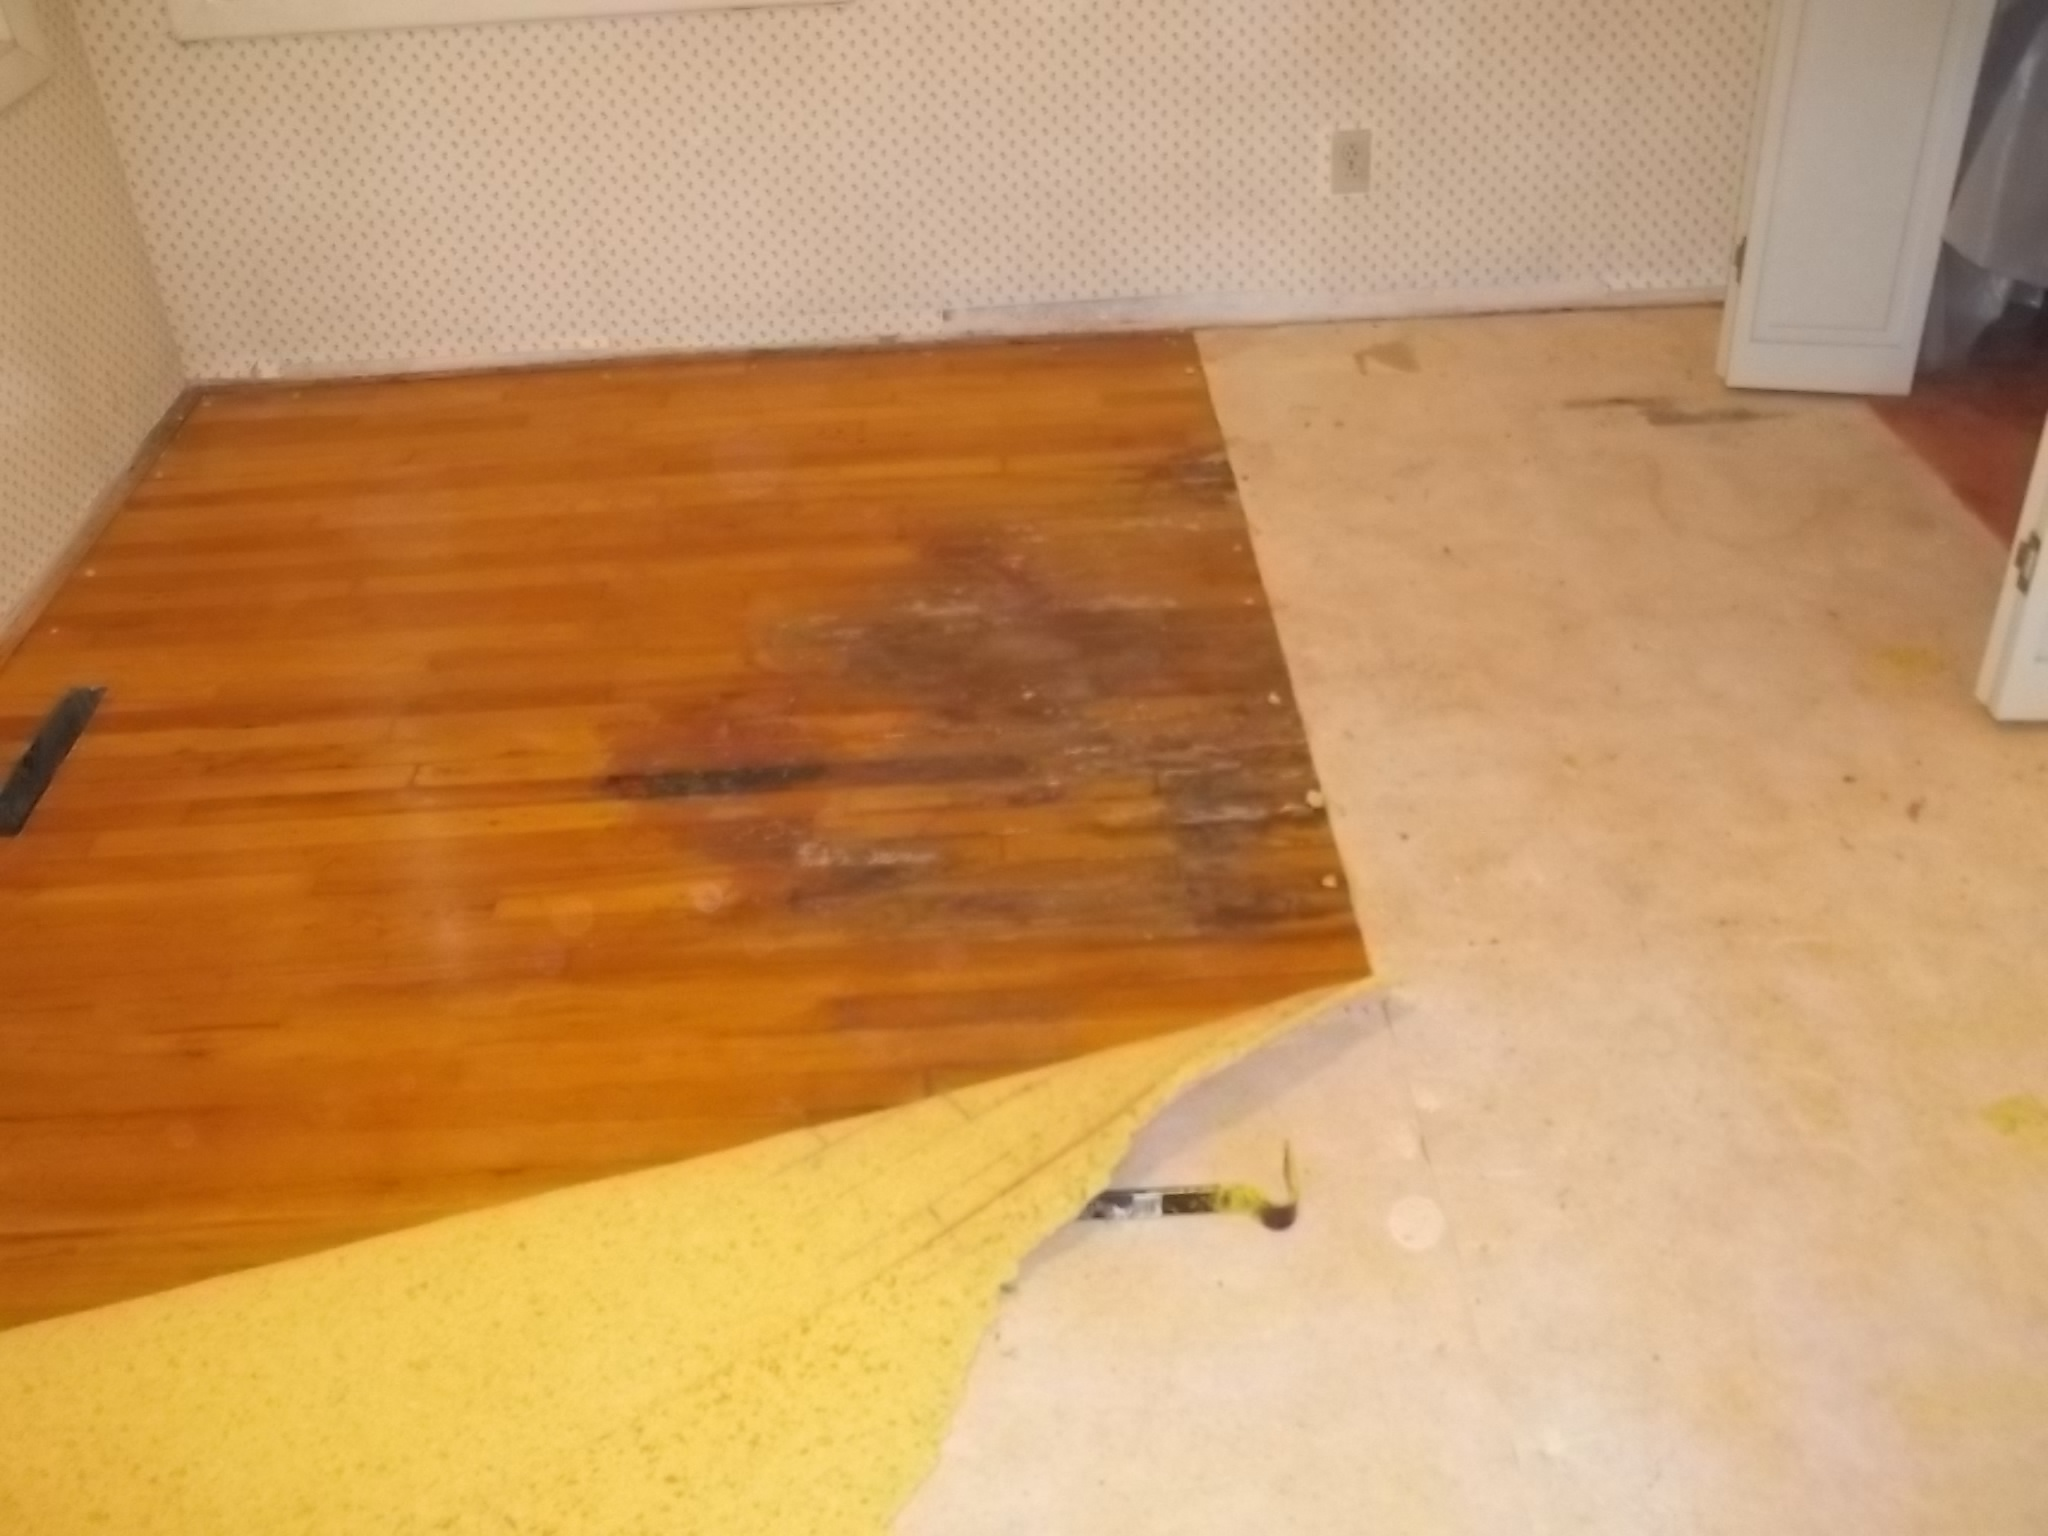 Water Damage Repair Wet Drywall Insulation And Flooring In Vernal